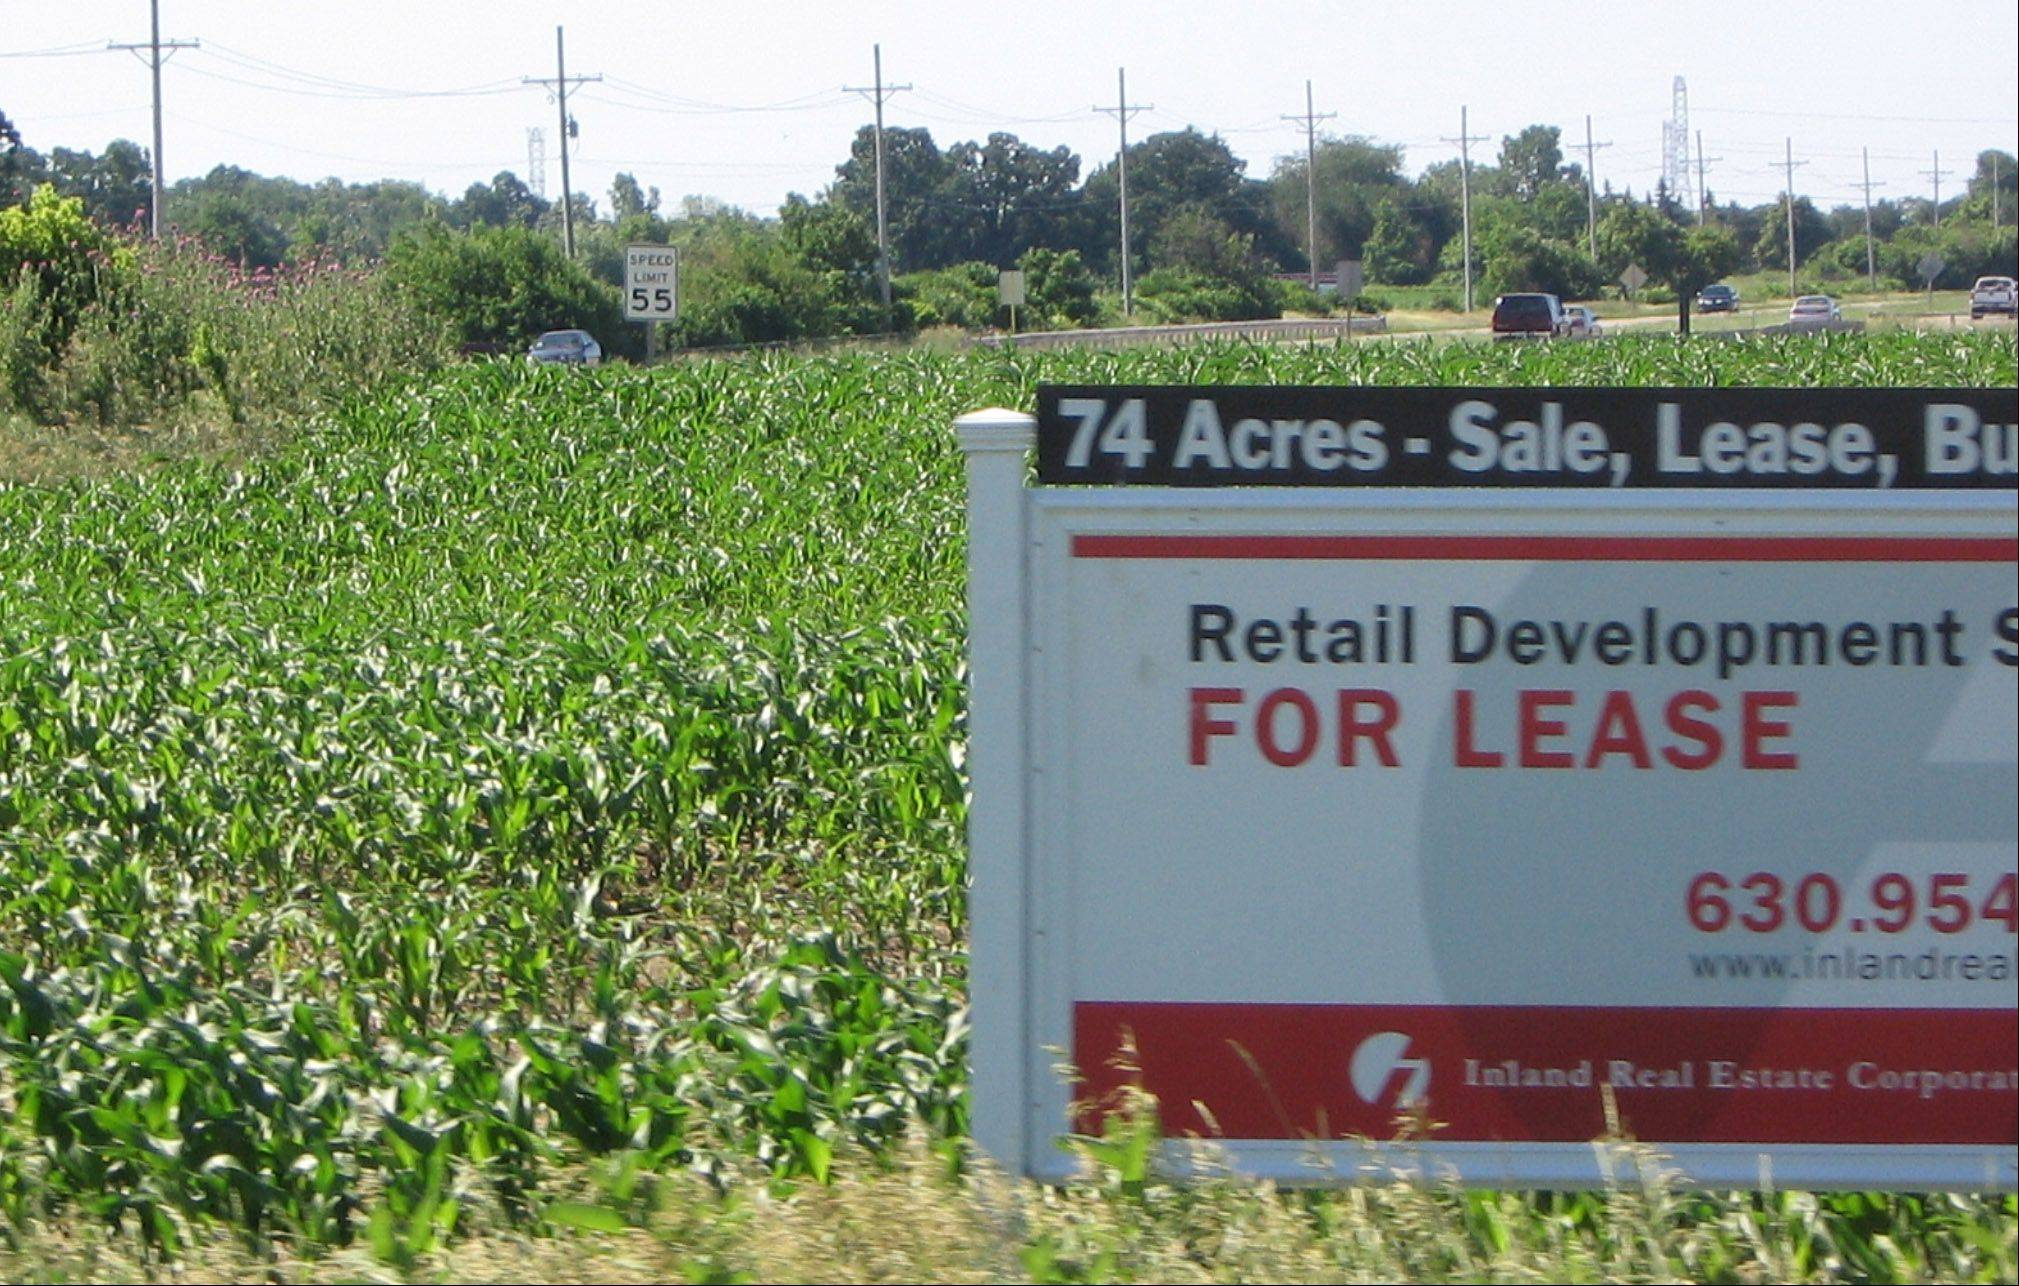 A development site is advertised on Route 12/120, which is considered a key growth intersection in Lakemoor.